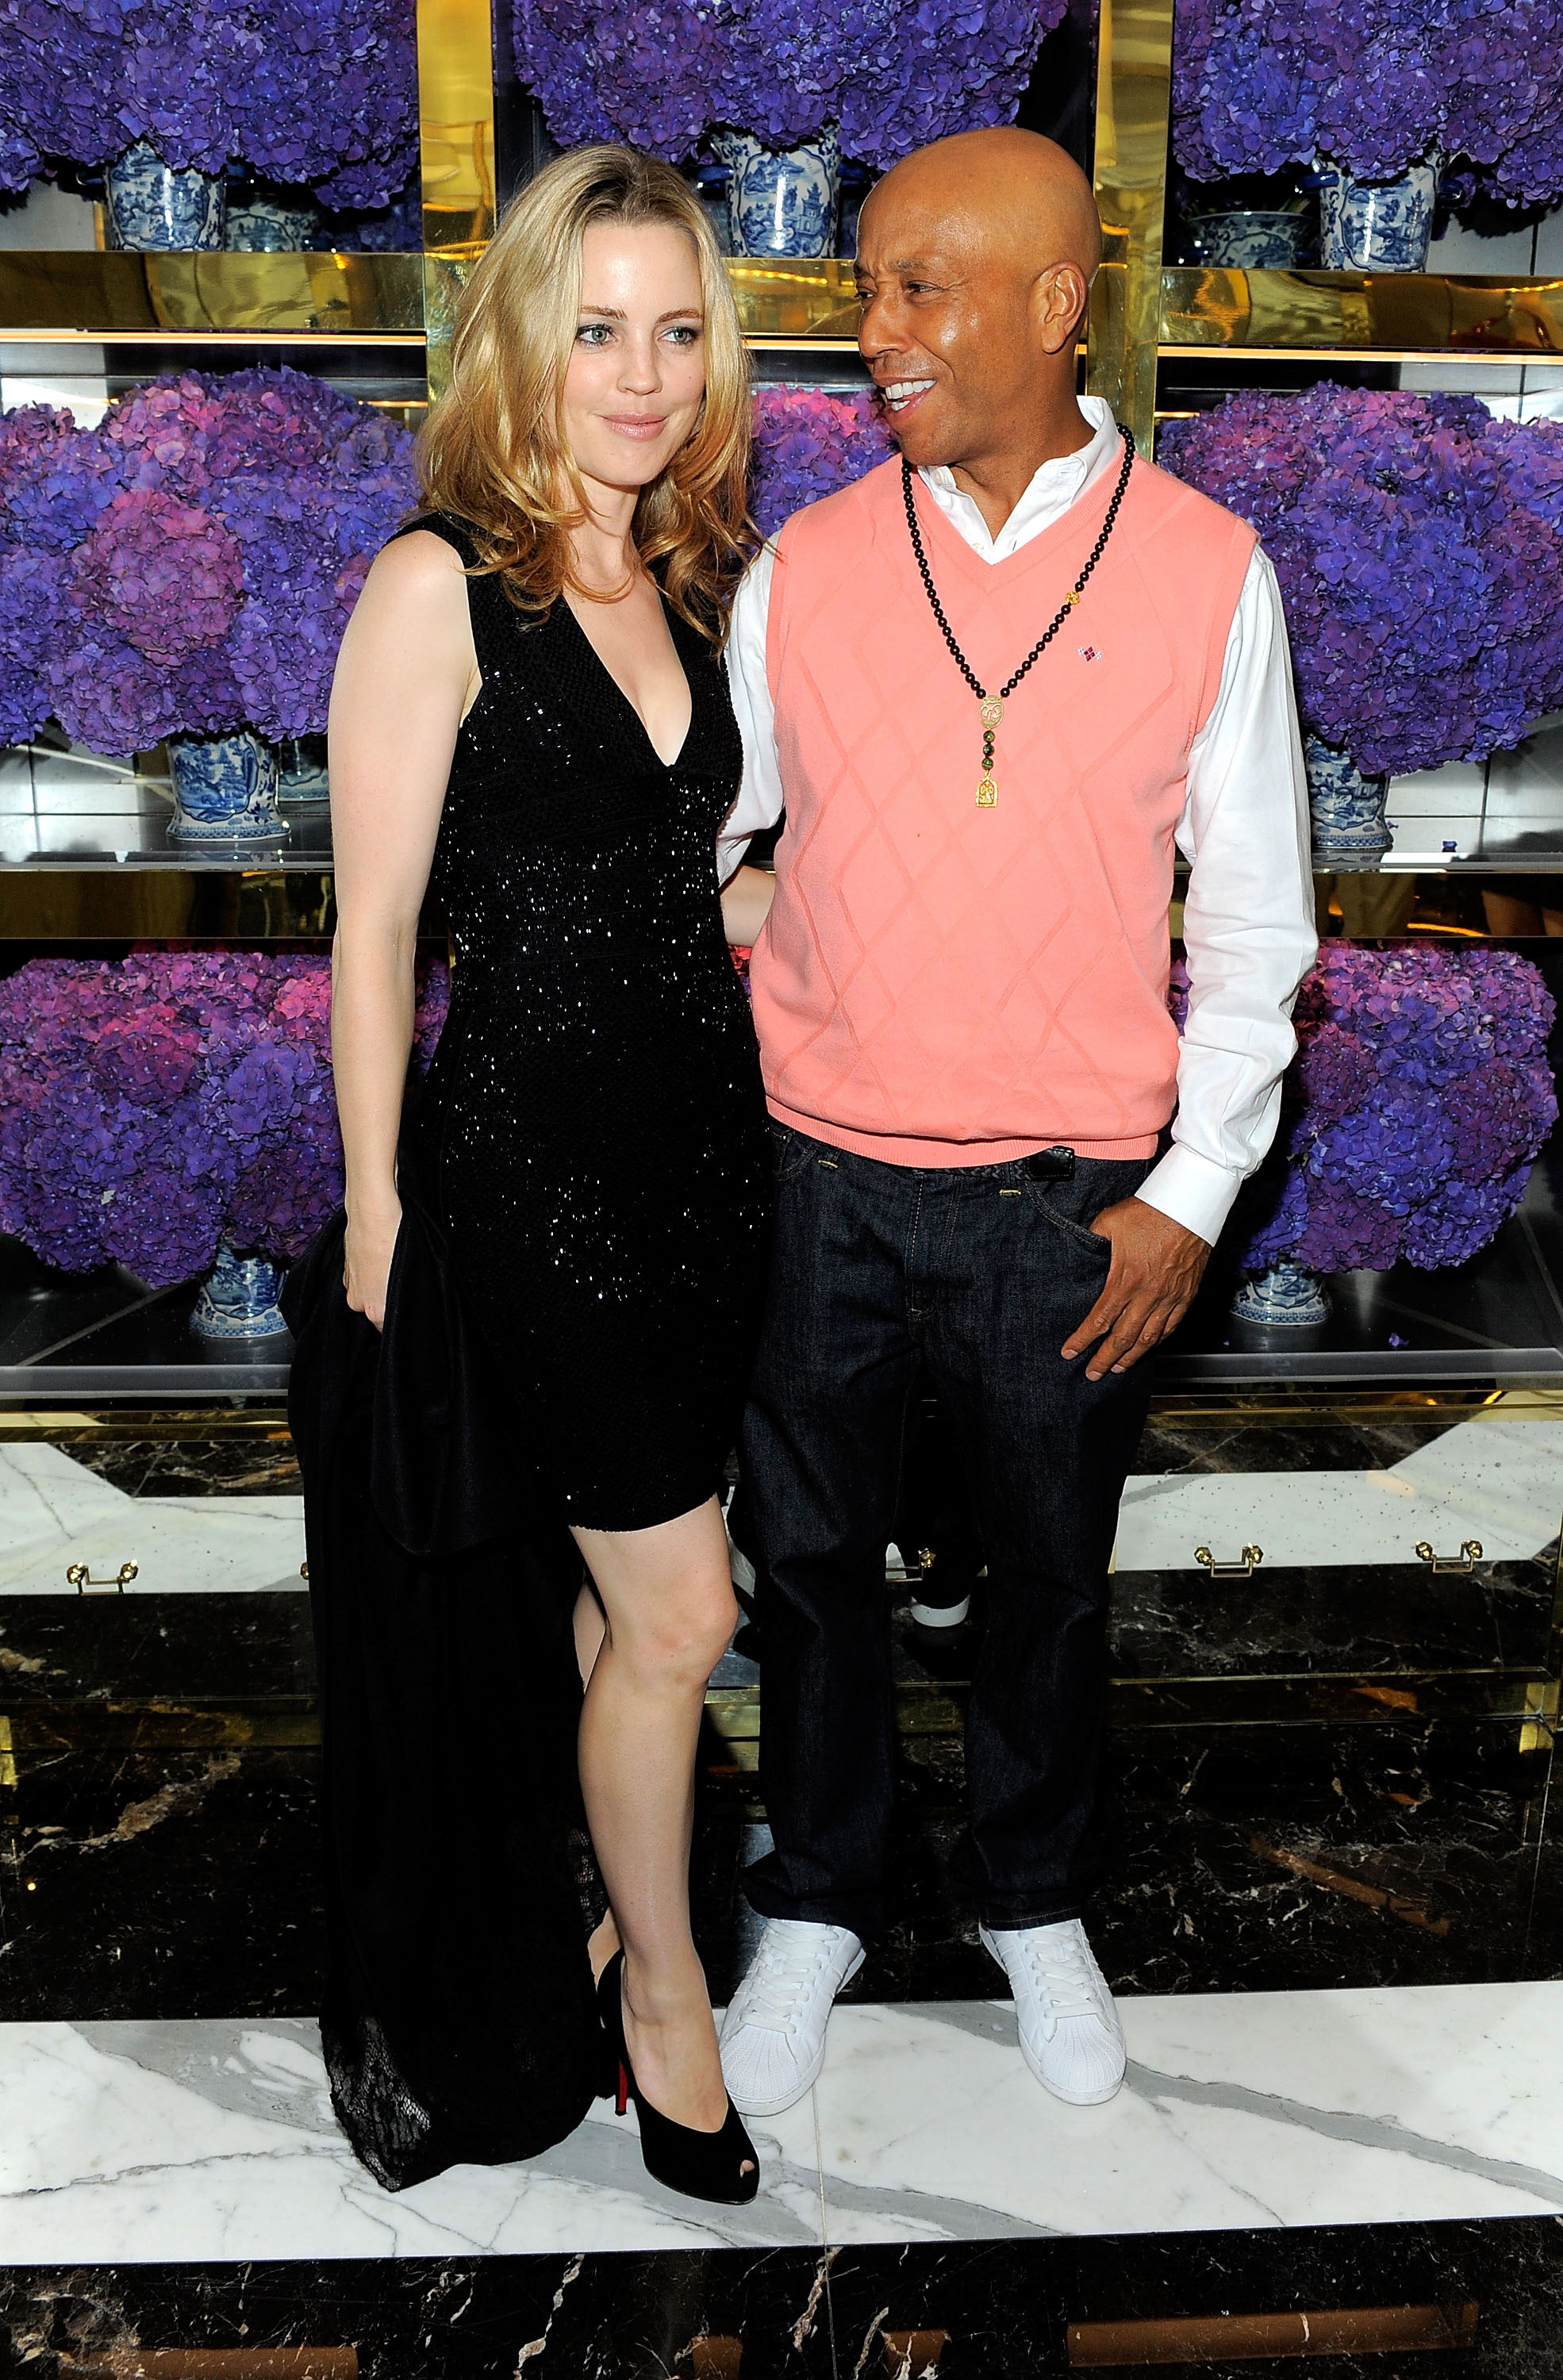 Russell Simmons and Melissa George at Tory Burch store opening in NYC.